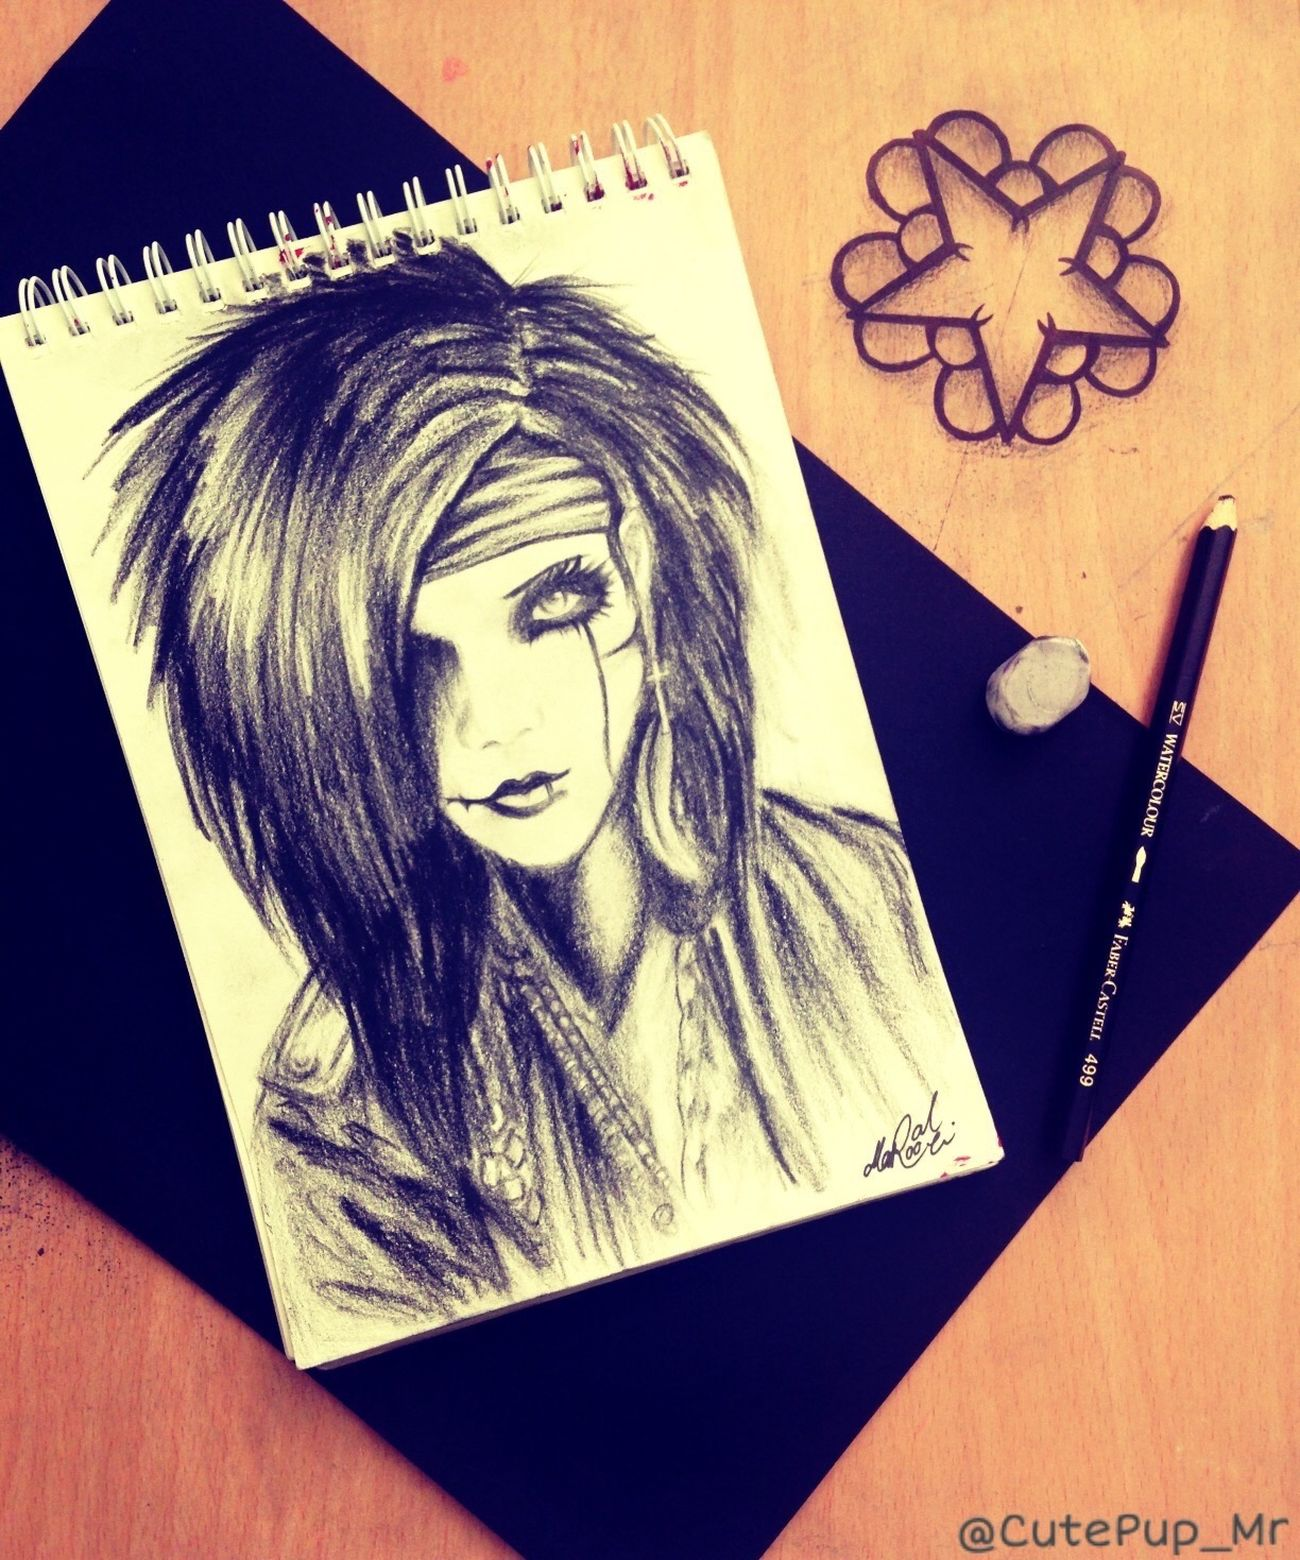 Finally Finished Drawing Andy Biersack ! 🤘😋 Blackandwhite Black Veil Brides BvB BlackVeilBrides Rockstar Pencil Drawing Art Photography ArtWork Art, Drawing, Creativity Sketch Black Veil Brides <3  AndyBiersack Rock Music Rock'n'Roll Pencilart Done Star Black And White Sketching Rock Band 😋 Rock Singer